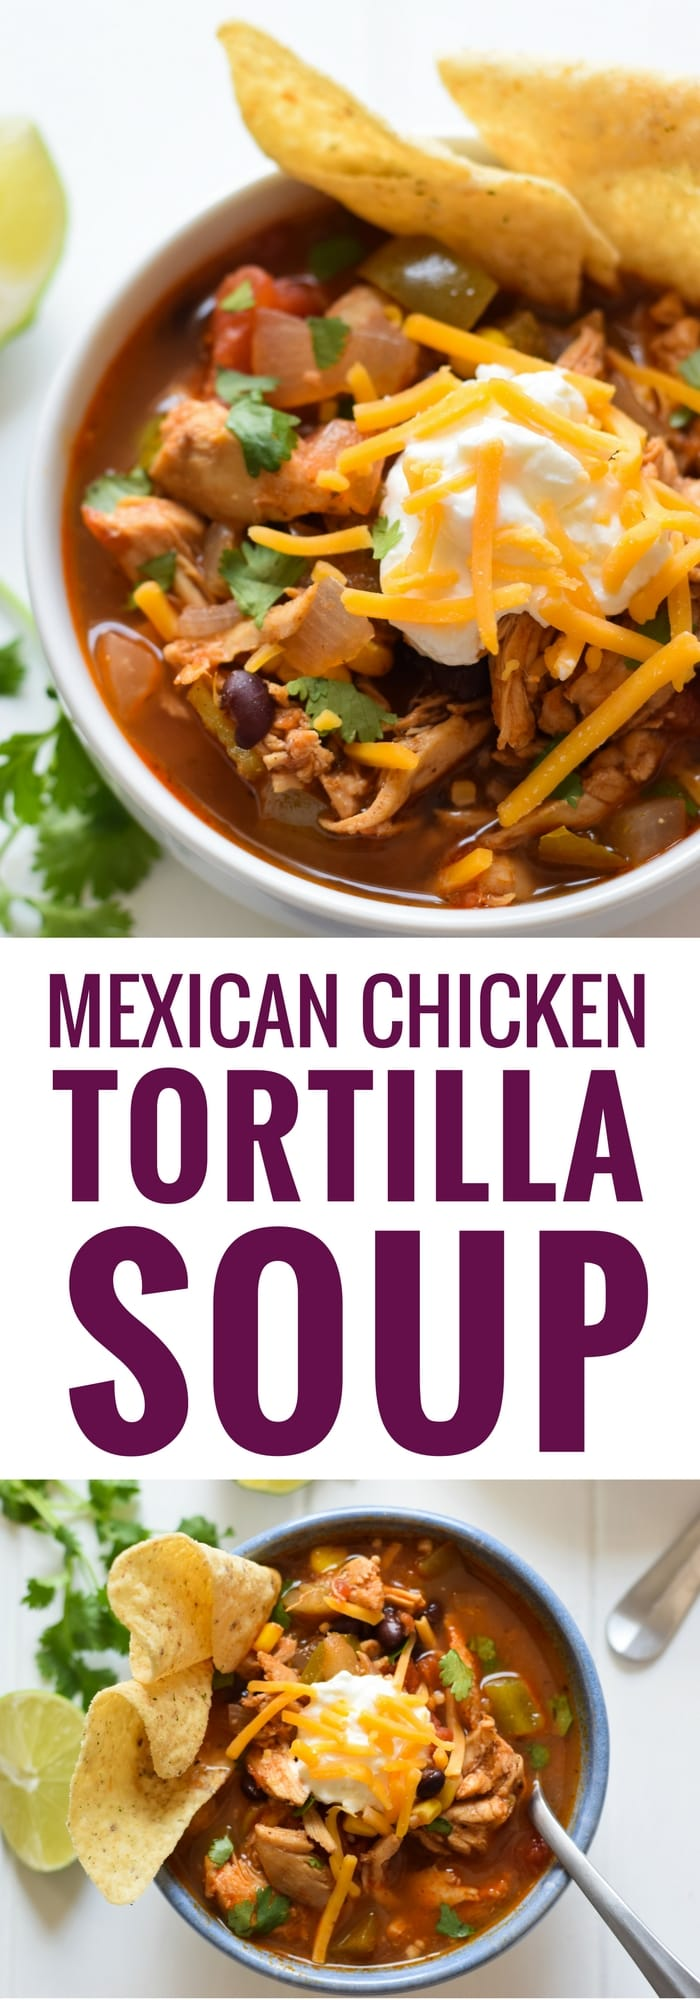 This Mexican Chicken Tortilla Soup has the perfect amount of spice ...